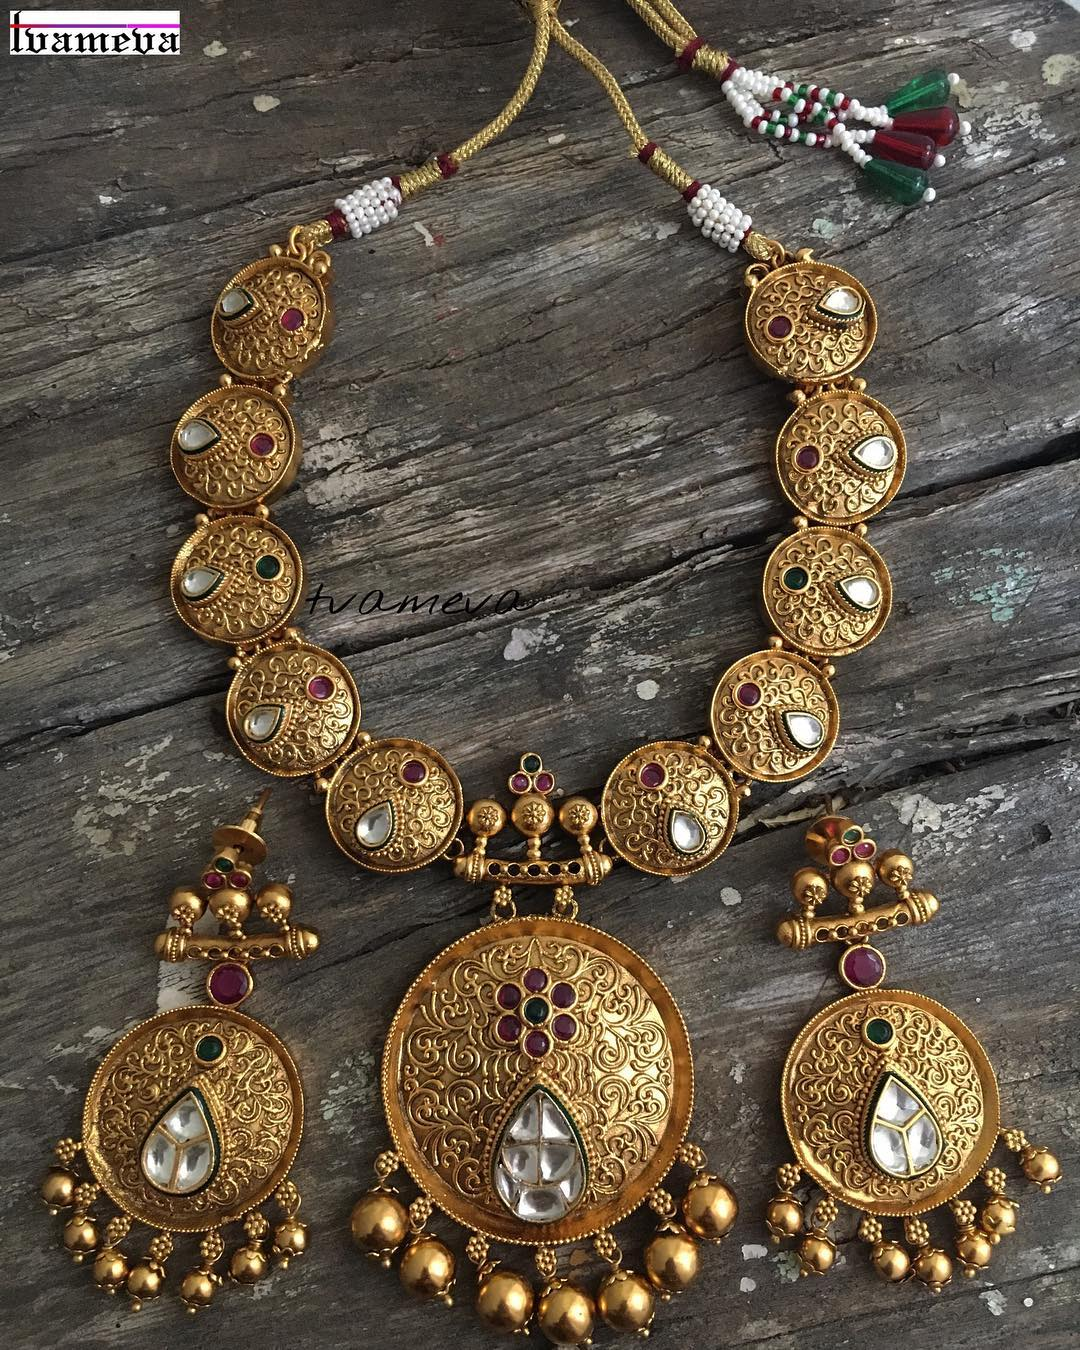 Antique Kundan Set from Tvameva